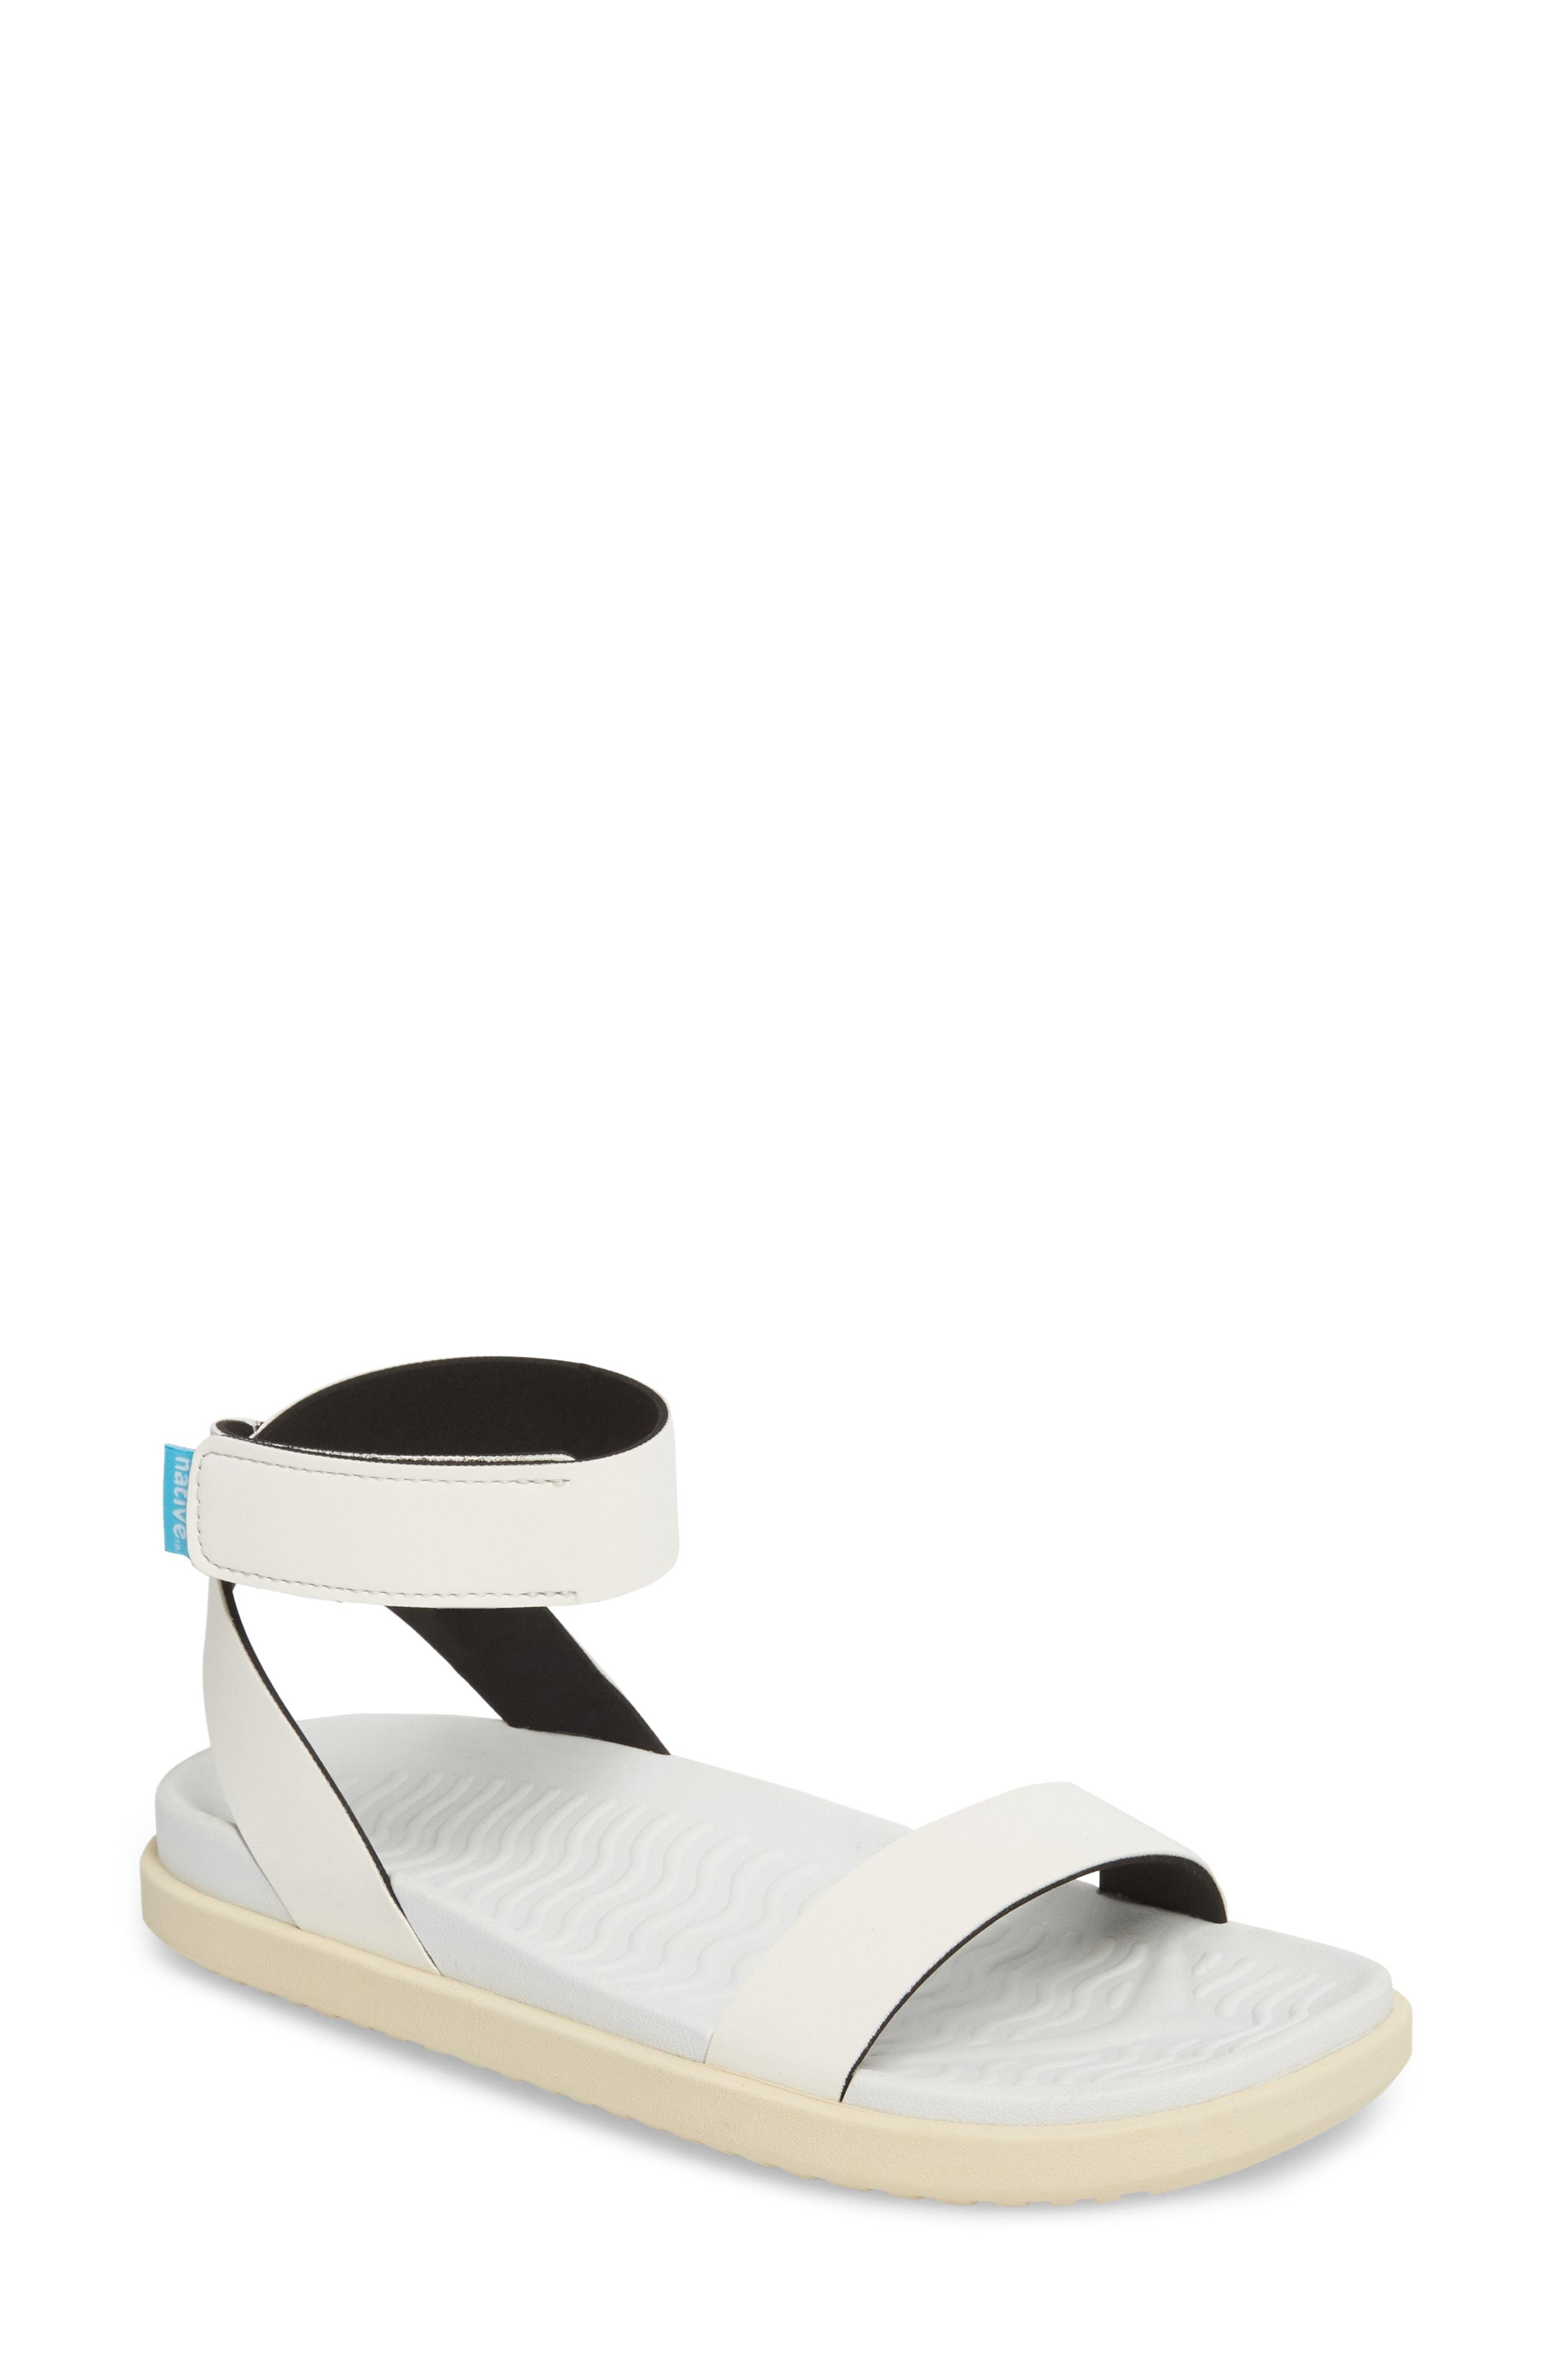 63bb9ff9180 Lyst - Native Shoes Juliet Sandal in White